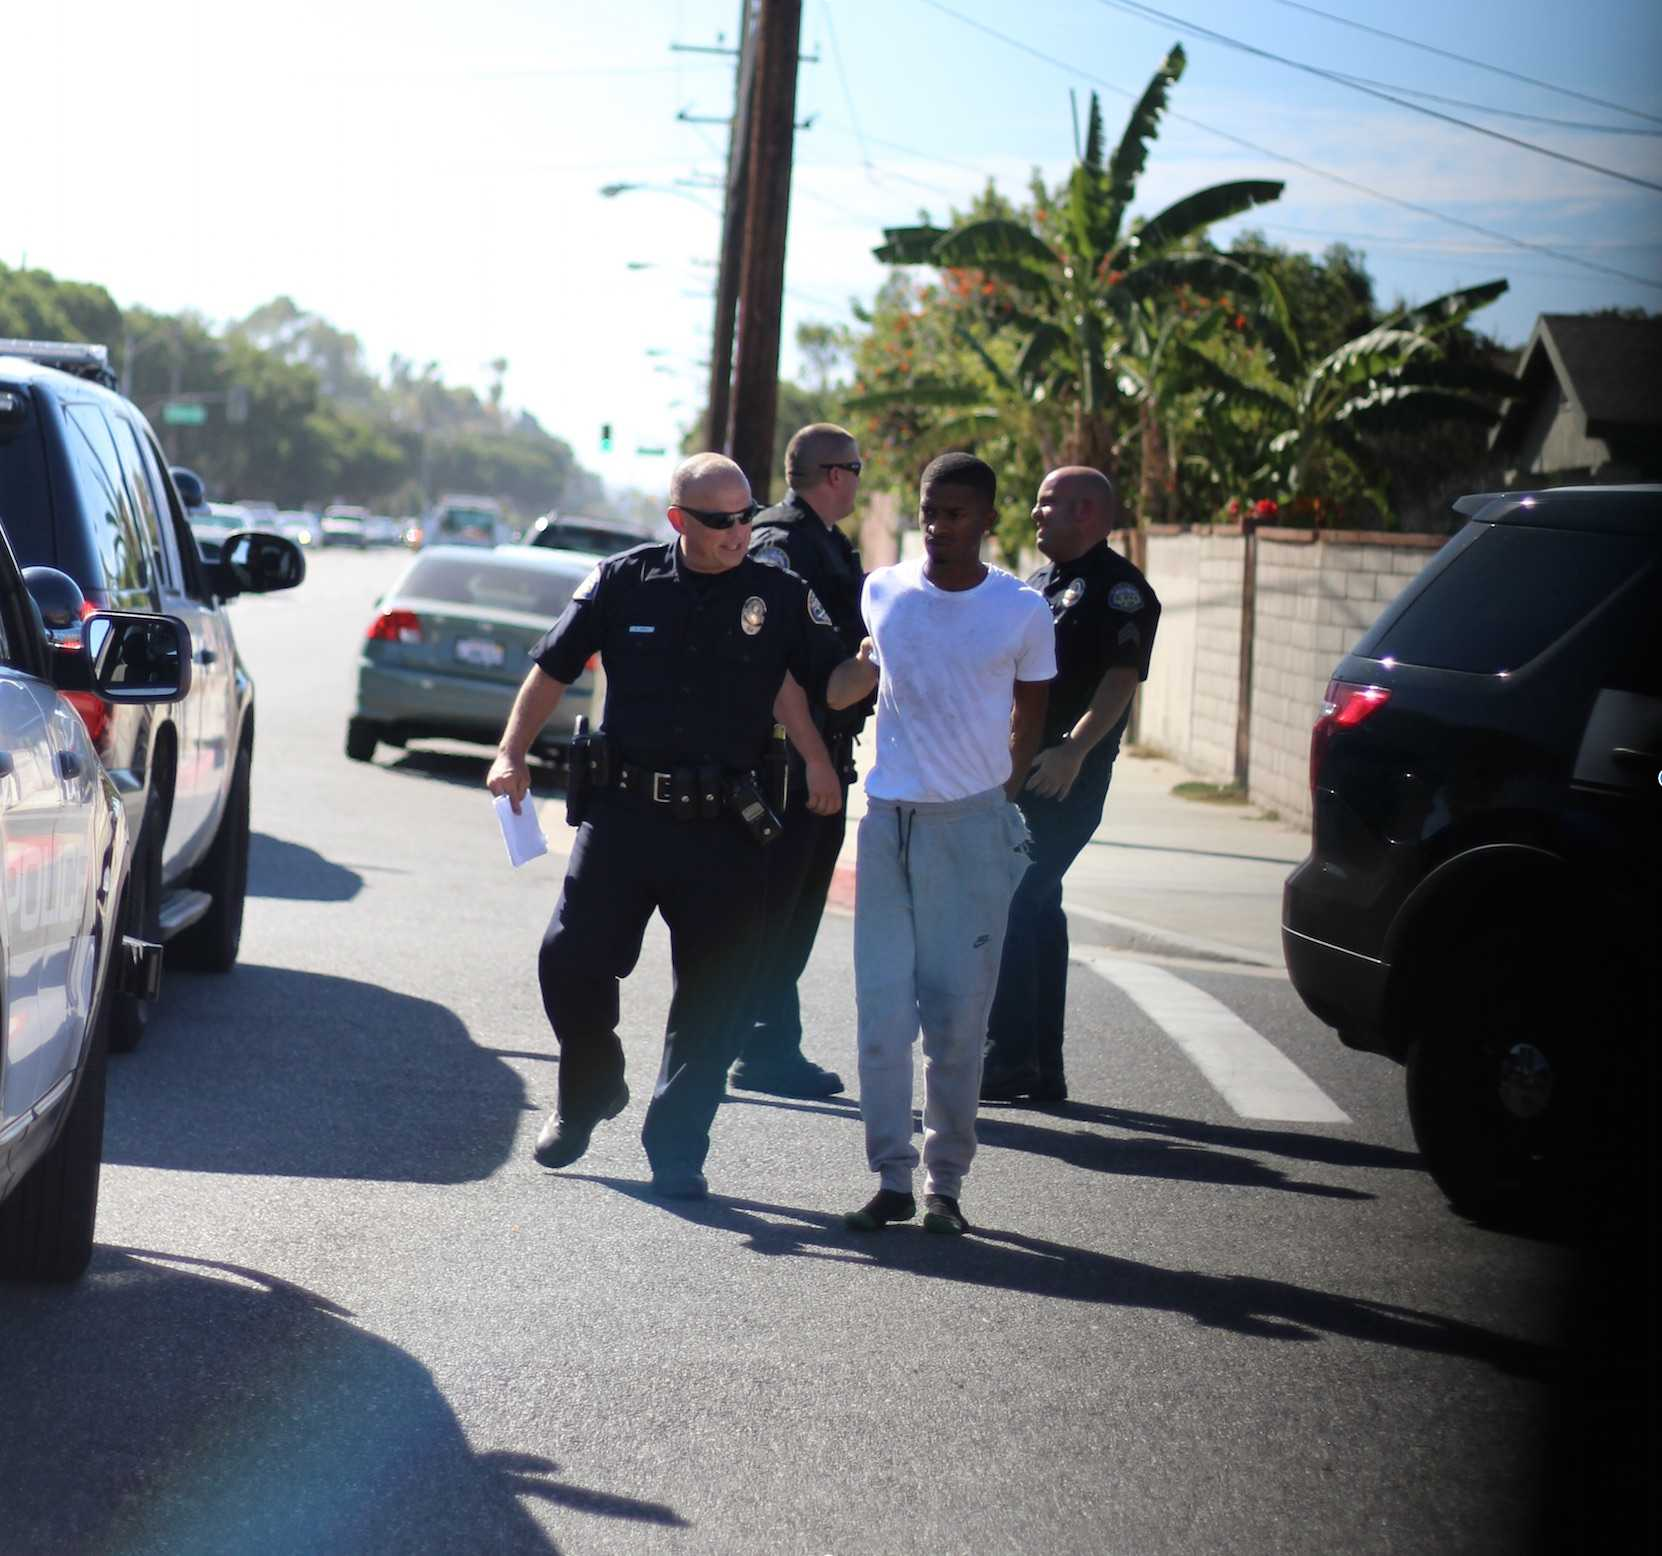 Officer escorts alleged burglary suspect to the back of the squad car. Photo credit: Jo Rankin